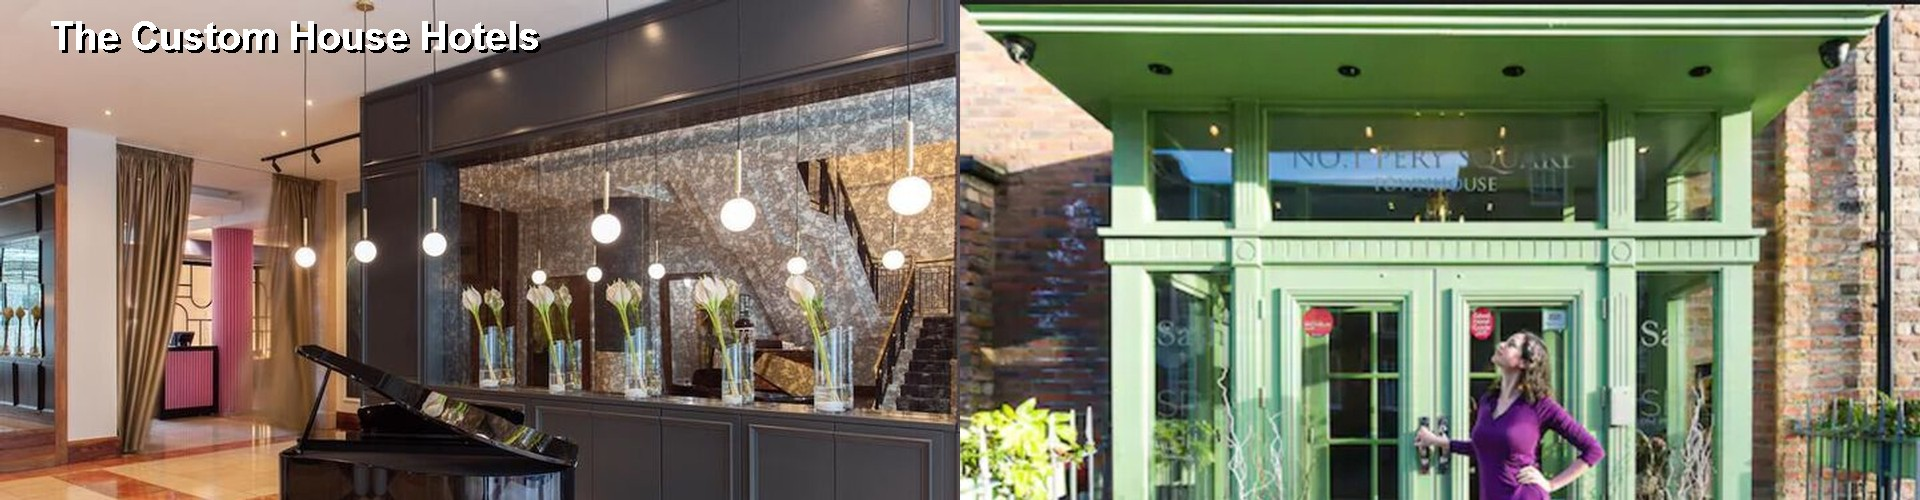 5 Best Hotels near The Custom House